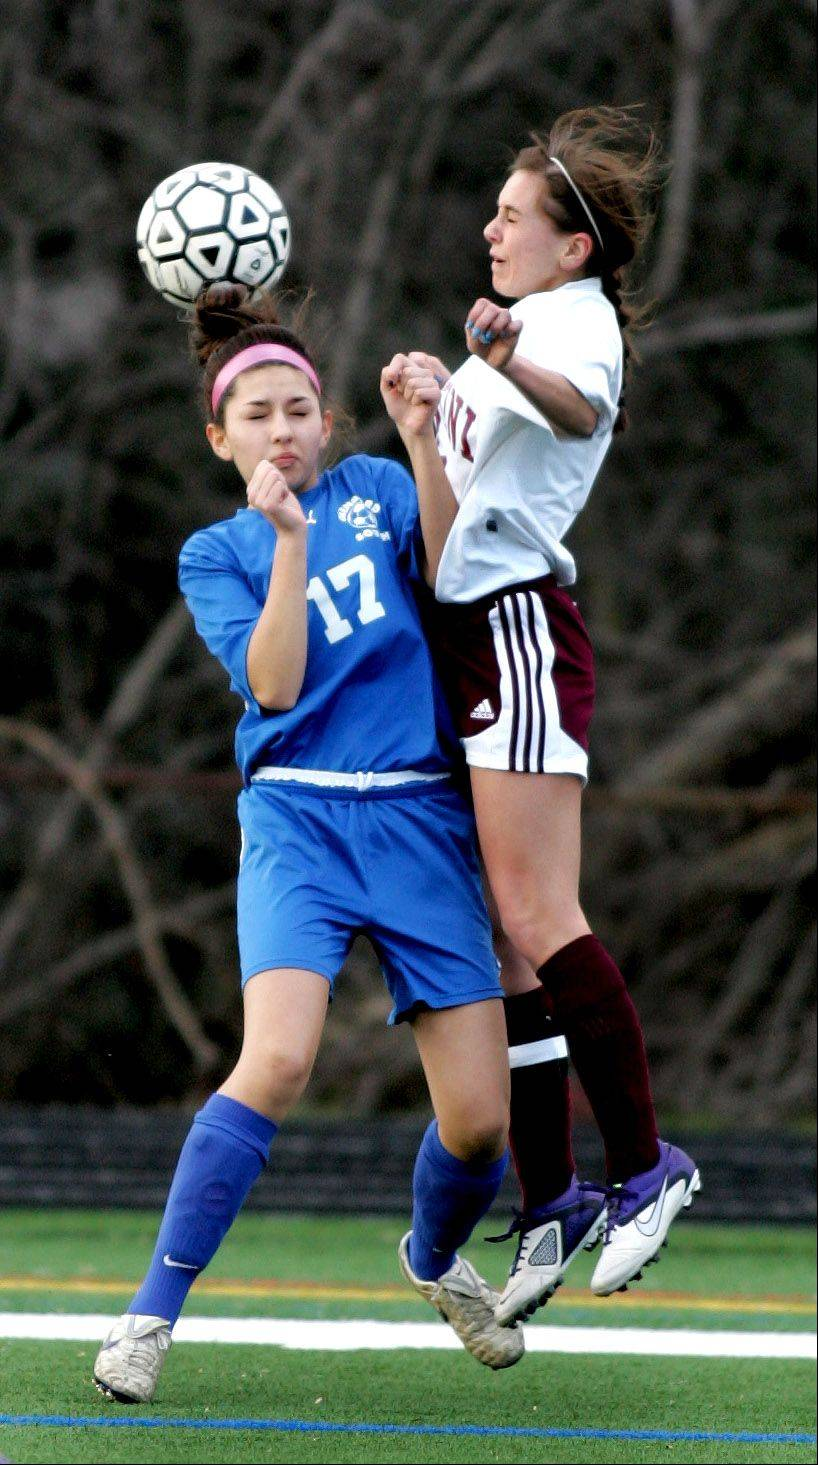 Glenbard South's Dana Langel, left and Montini's Haley Werner battle for the ball during Monday's soccer game in Lombard.